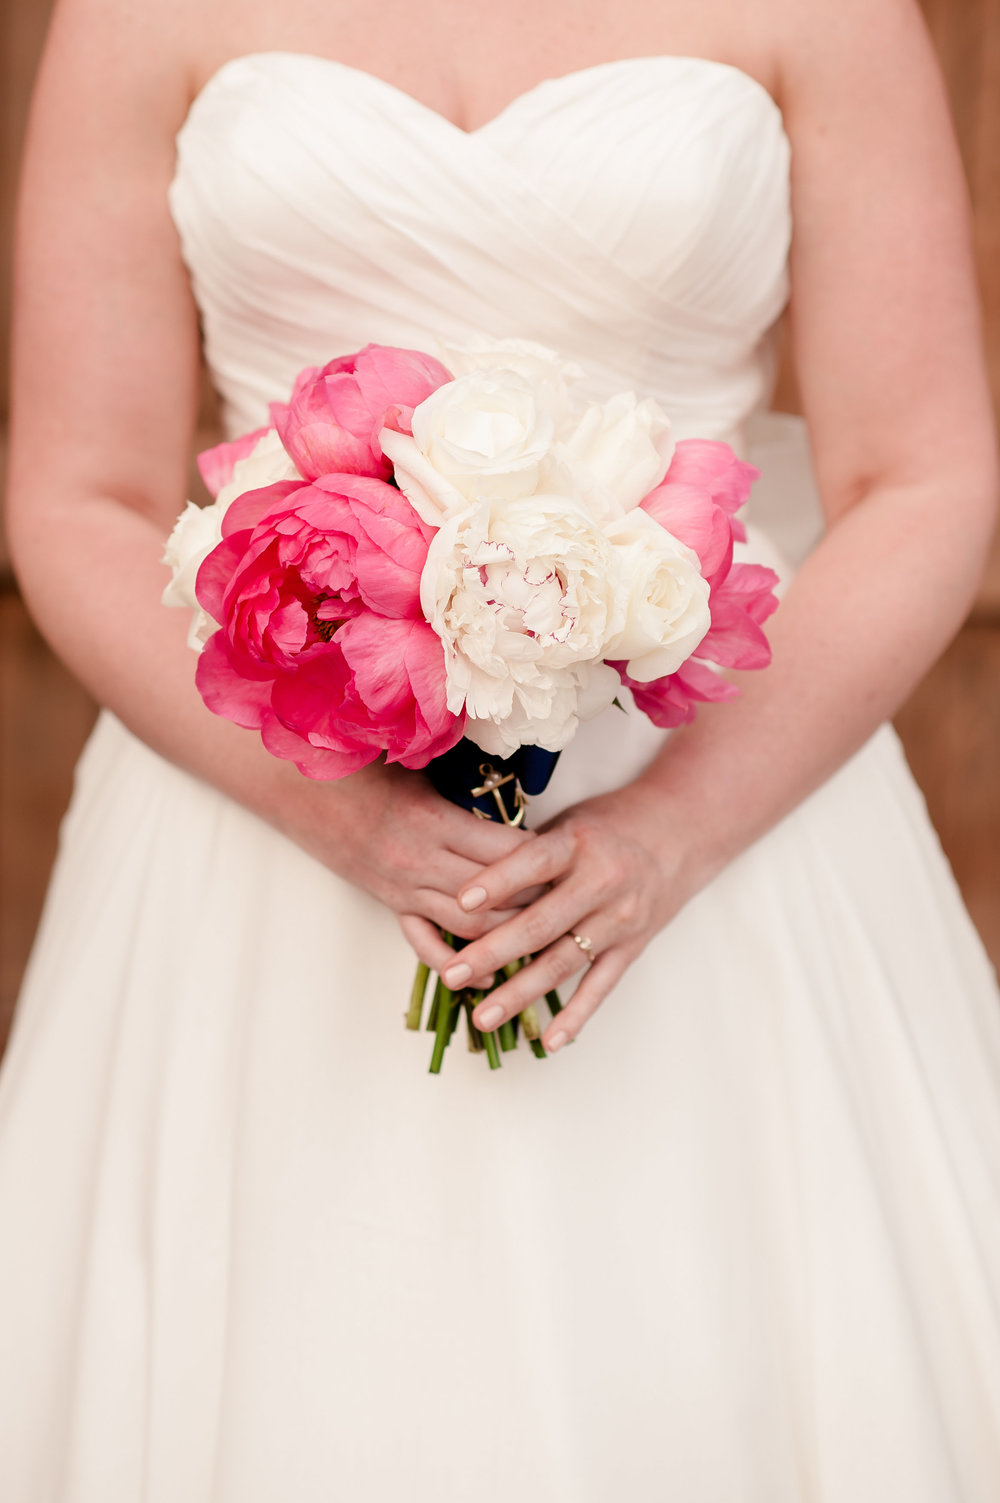 Lush Pink and White Peony Wedding Bouquet / designed by EightTreeStreet / photo by Terri Baskin Photography